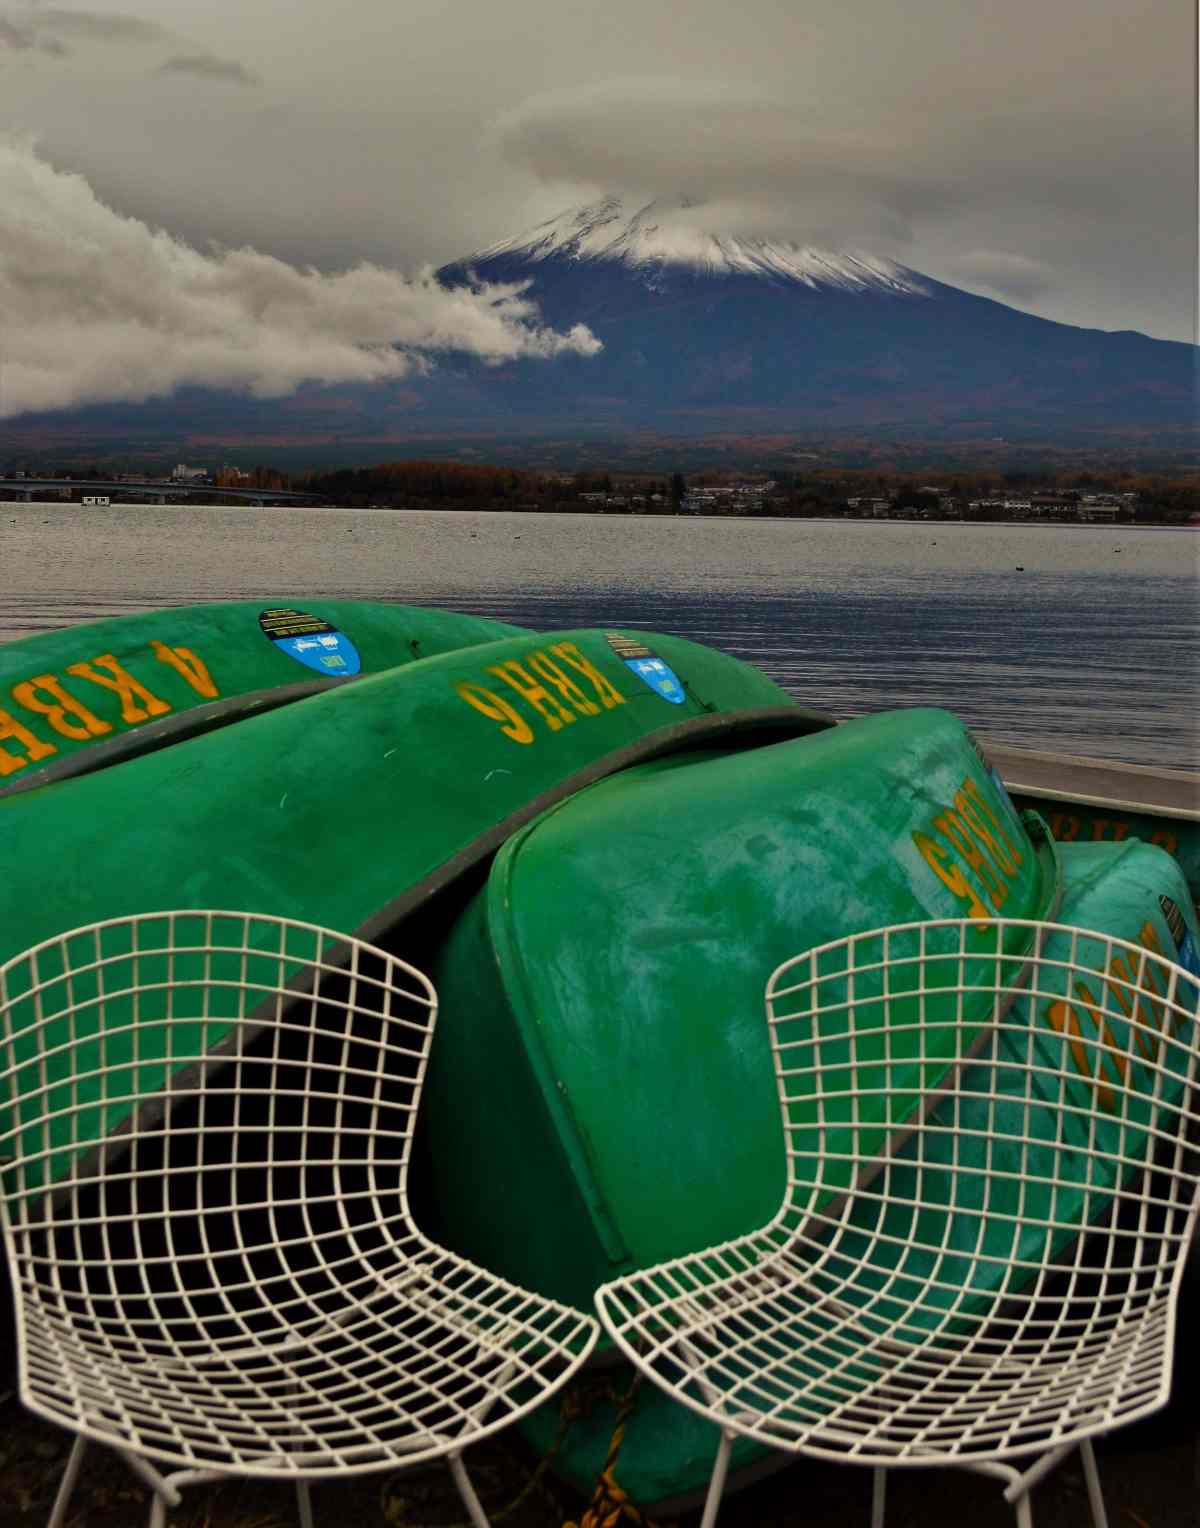 PhotoPOSTcard: Not Your Typical Mt. Fuji View